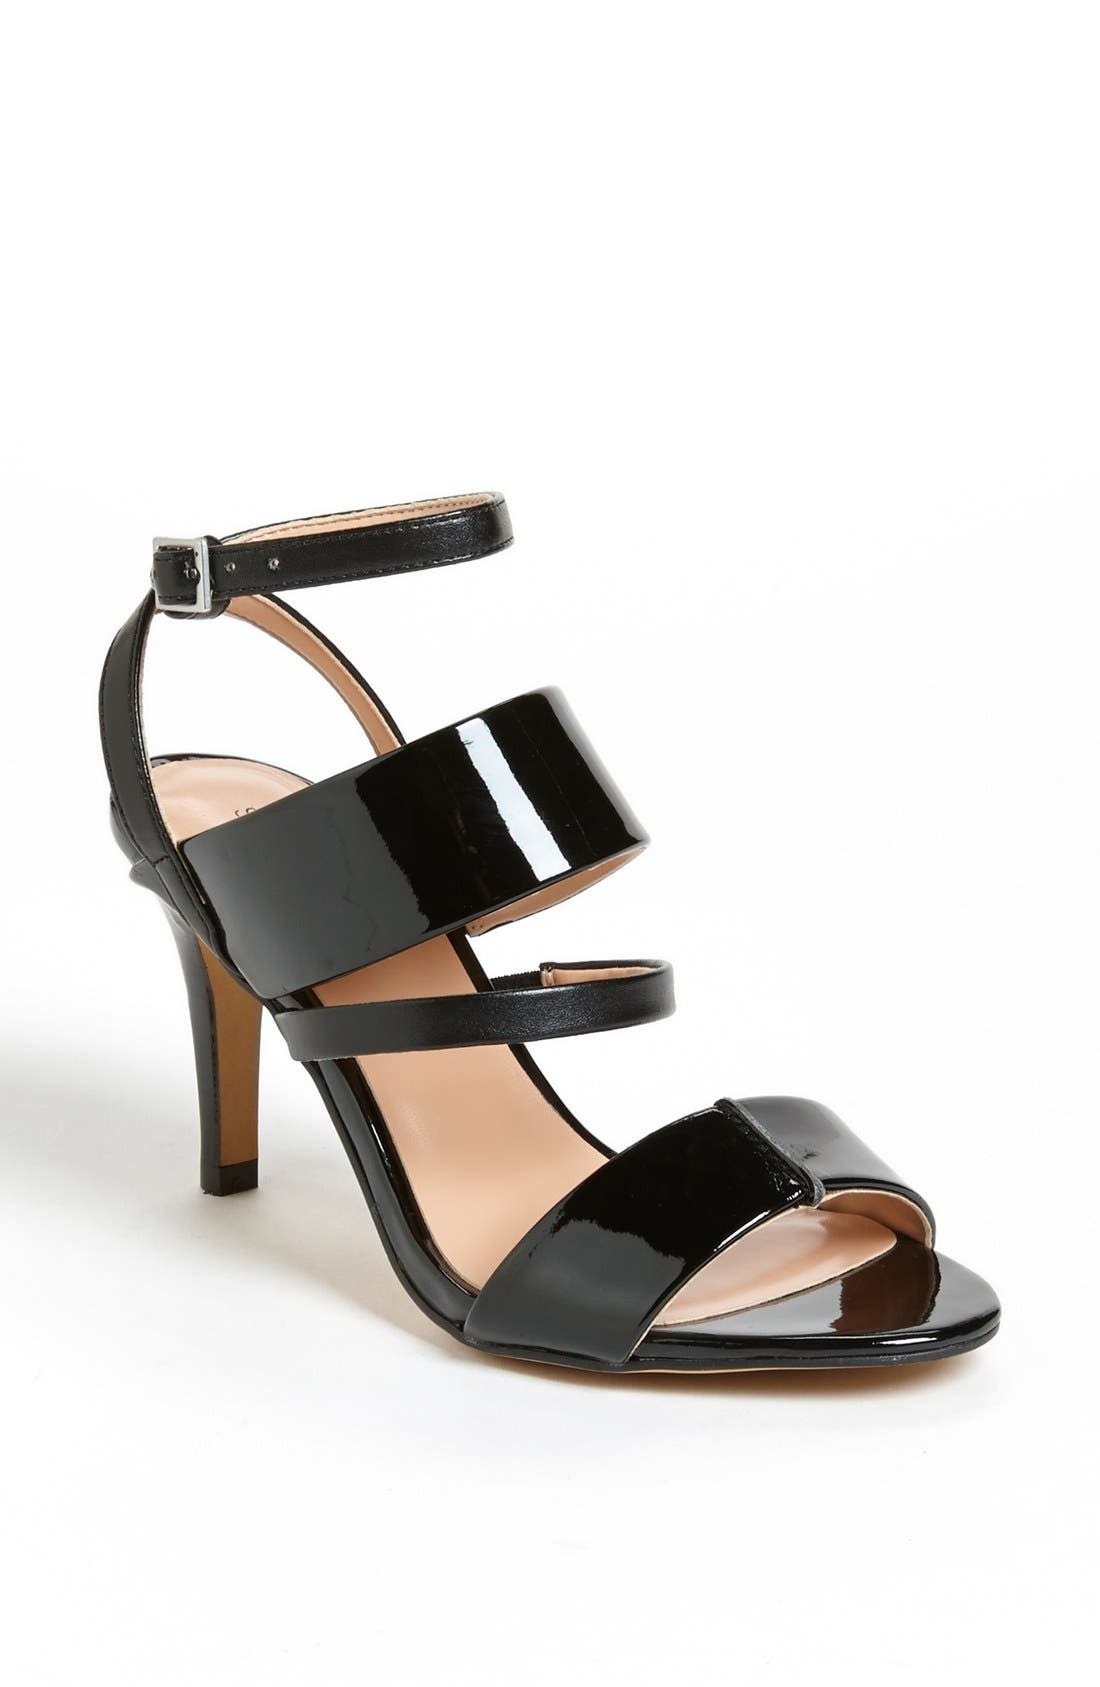 Main Image - Sole Society 'Adrie' Sandal